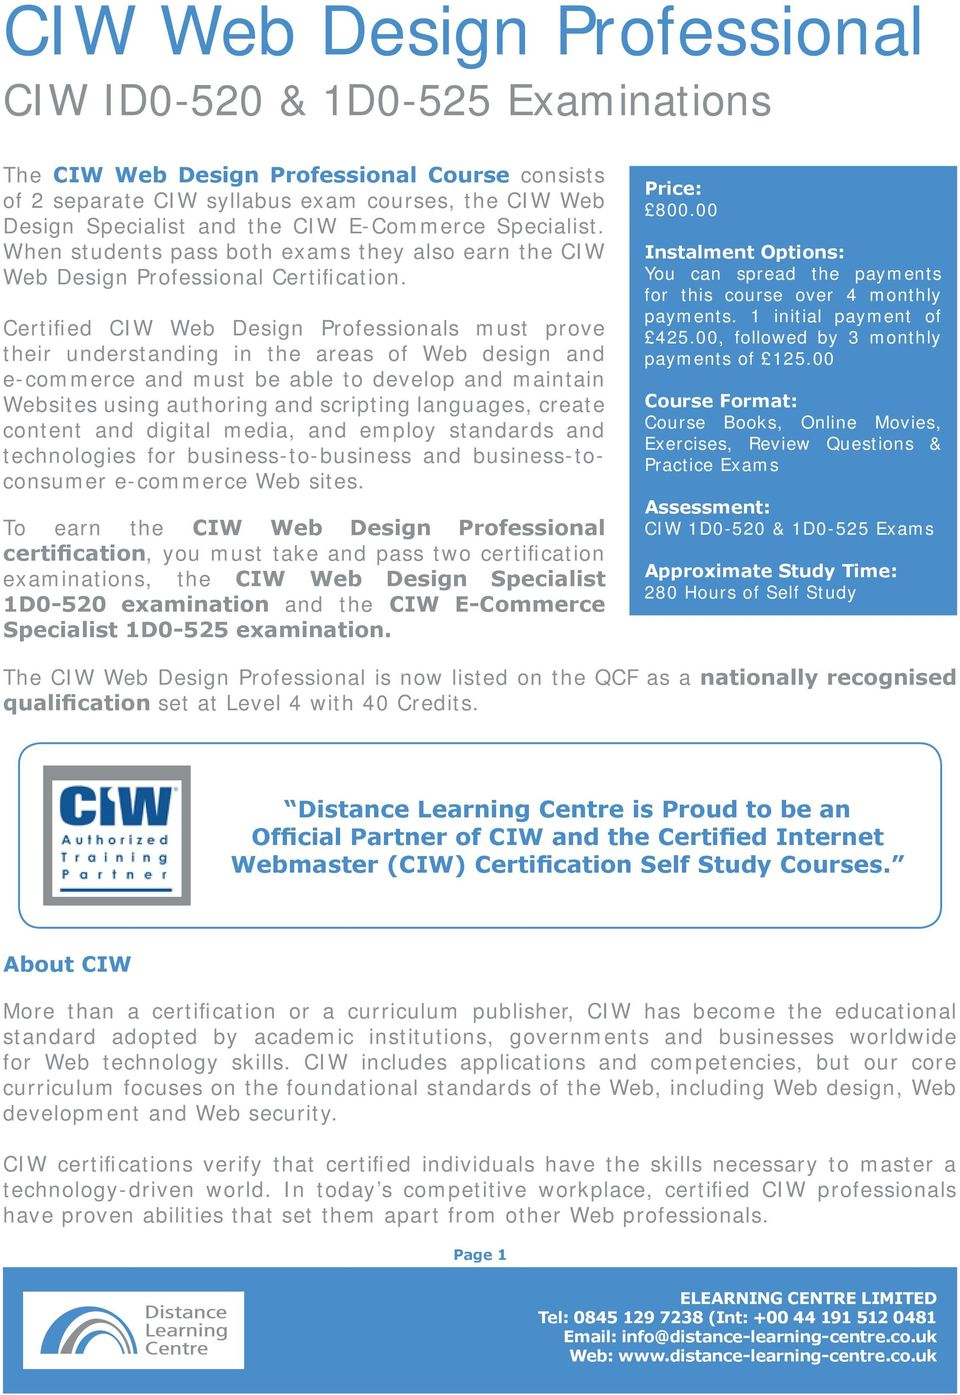 Certified CIW Web Design Professionals must prove their understanding in the areas of Web design and e-commerce and must be able to develop and maintain Websites using authoring and scripting